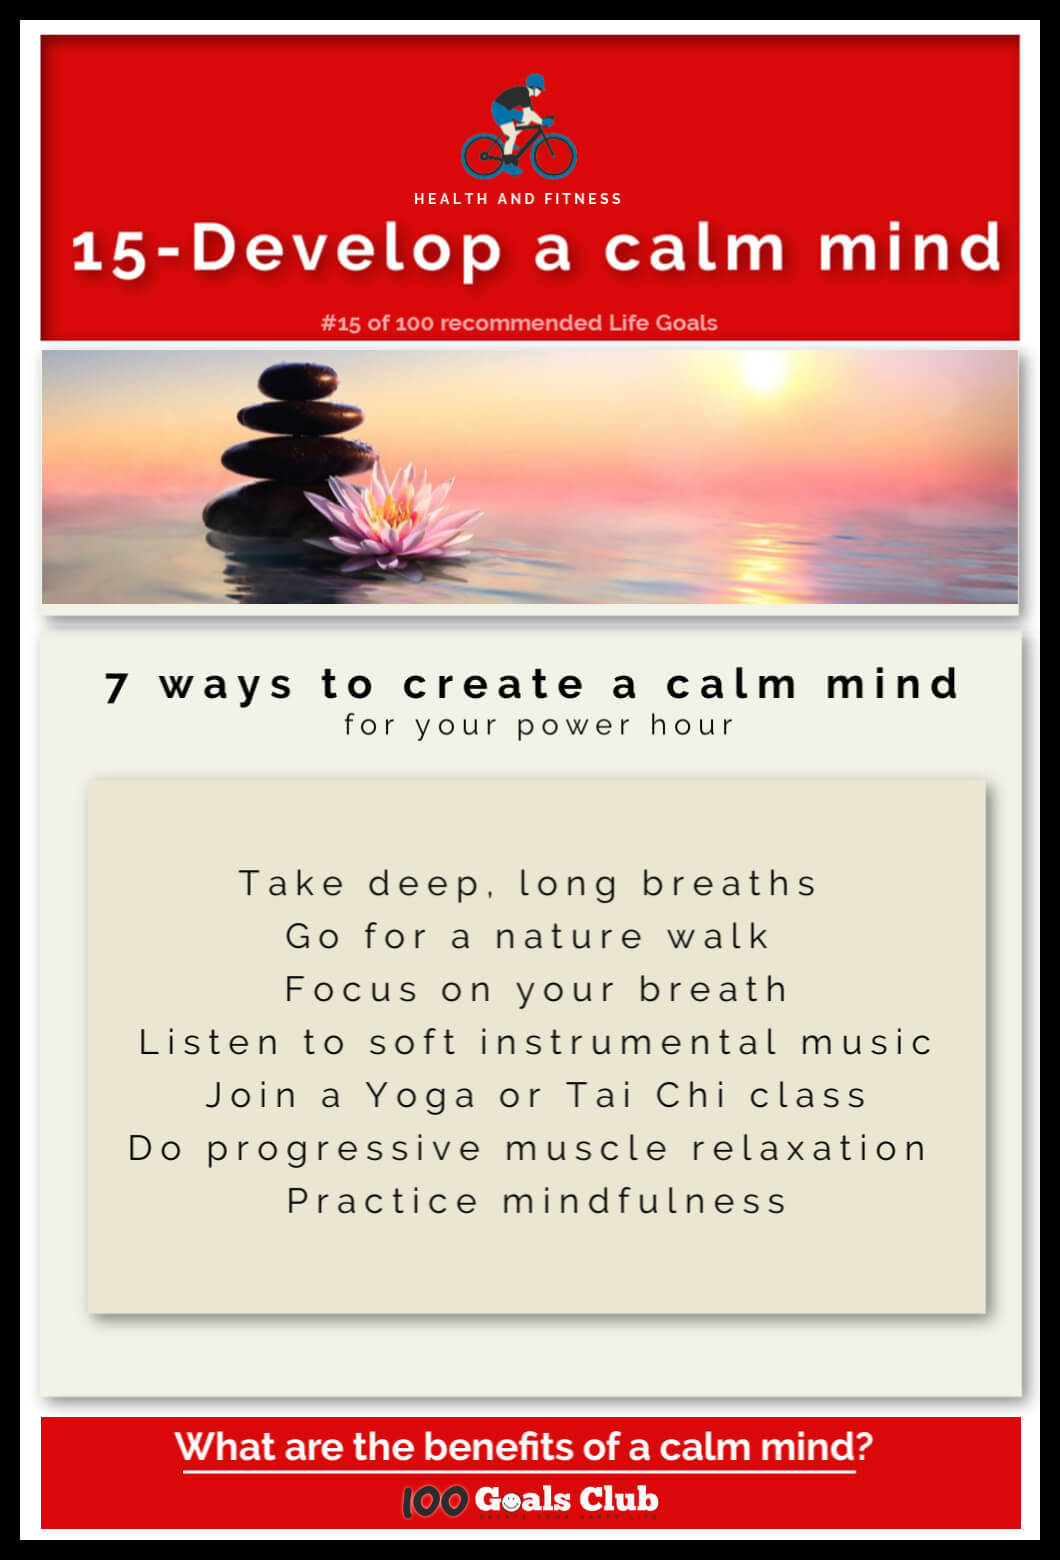 Calm mind benefits